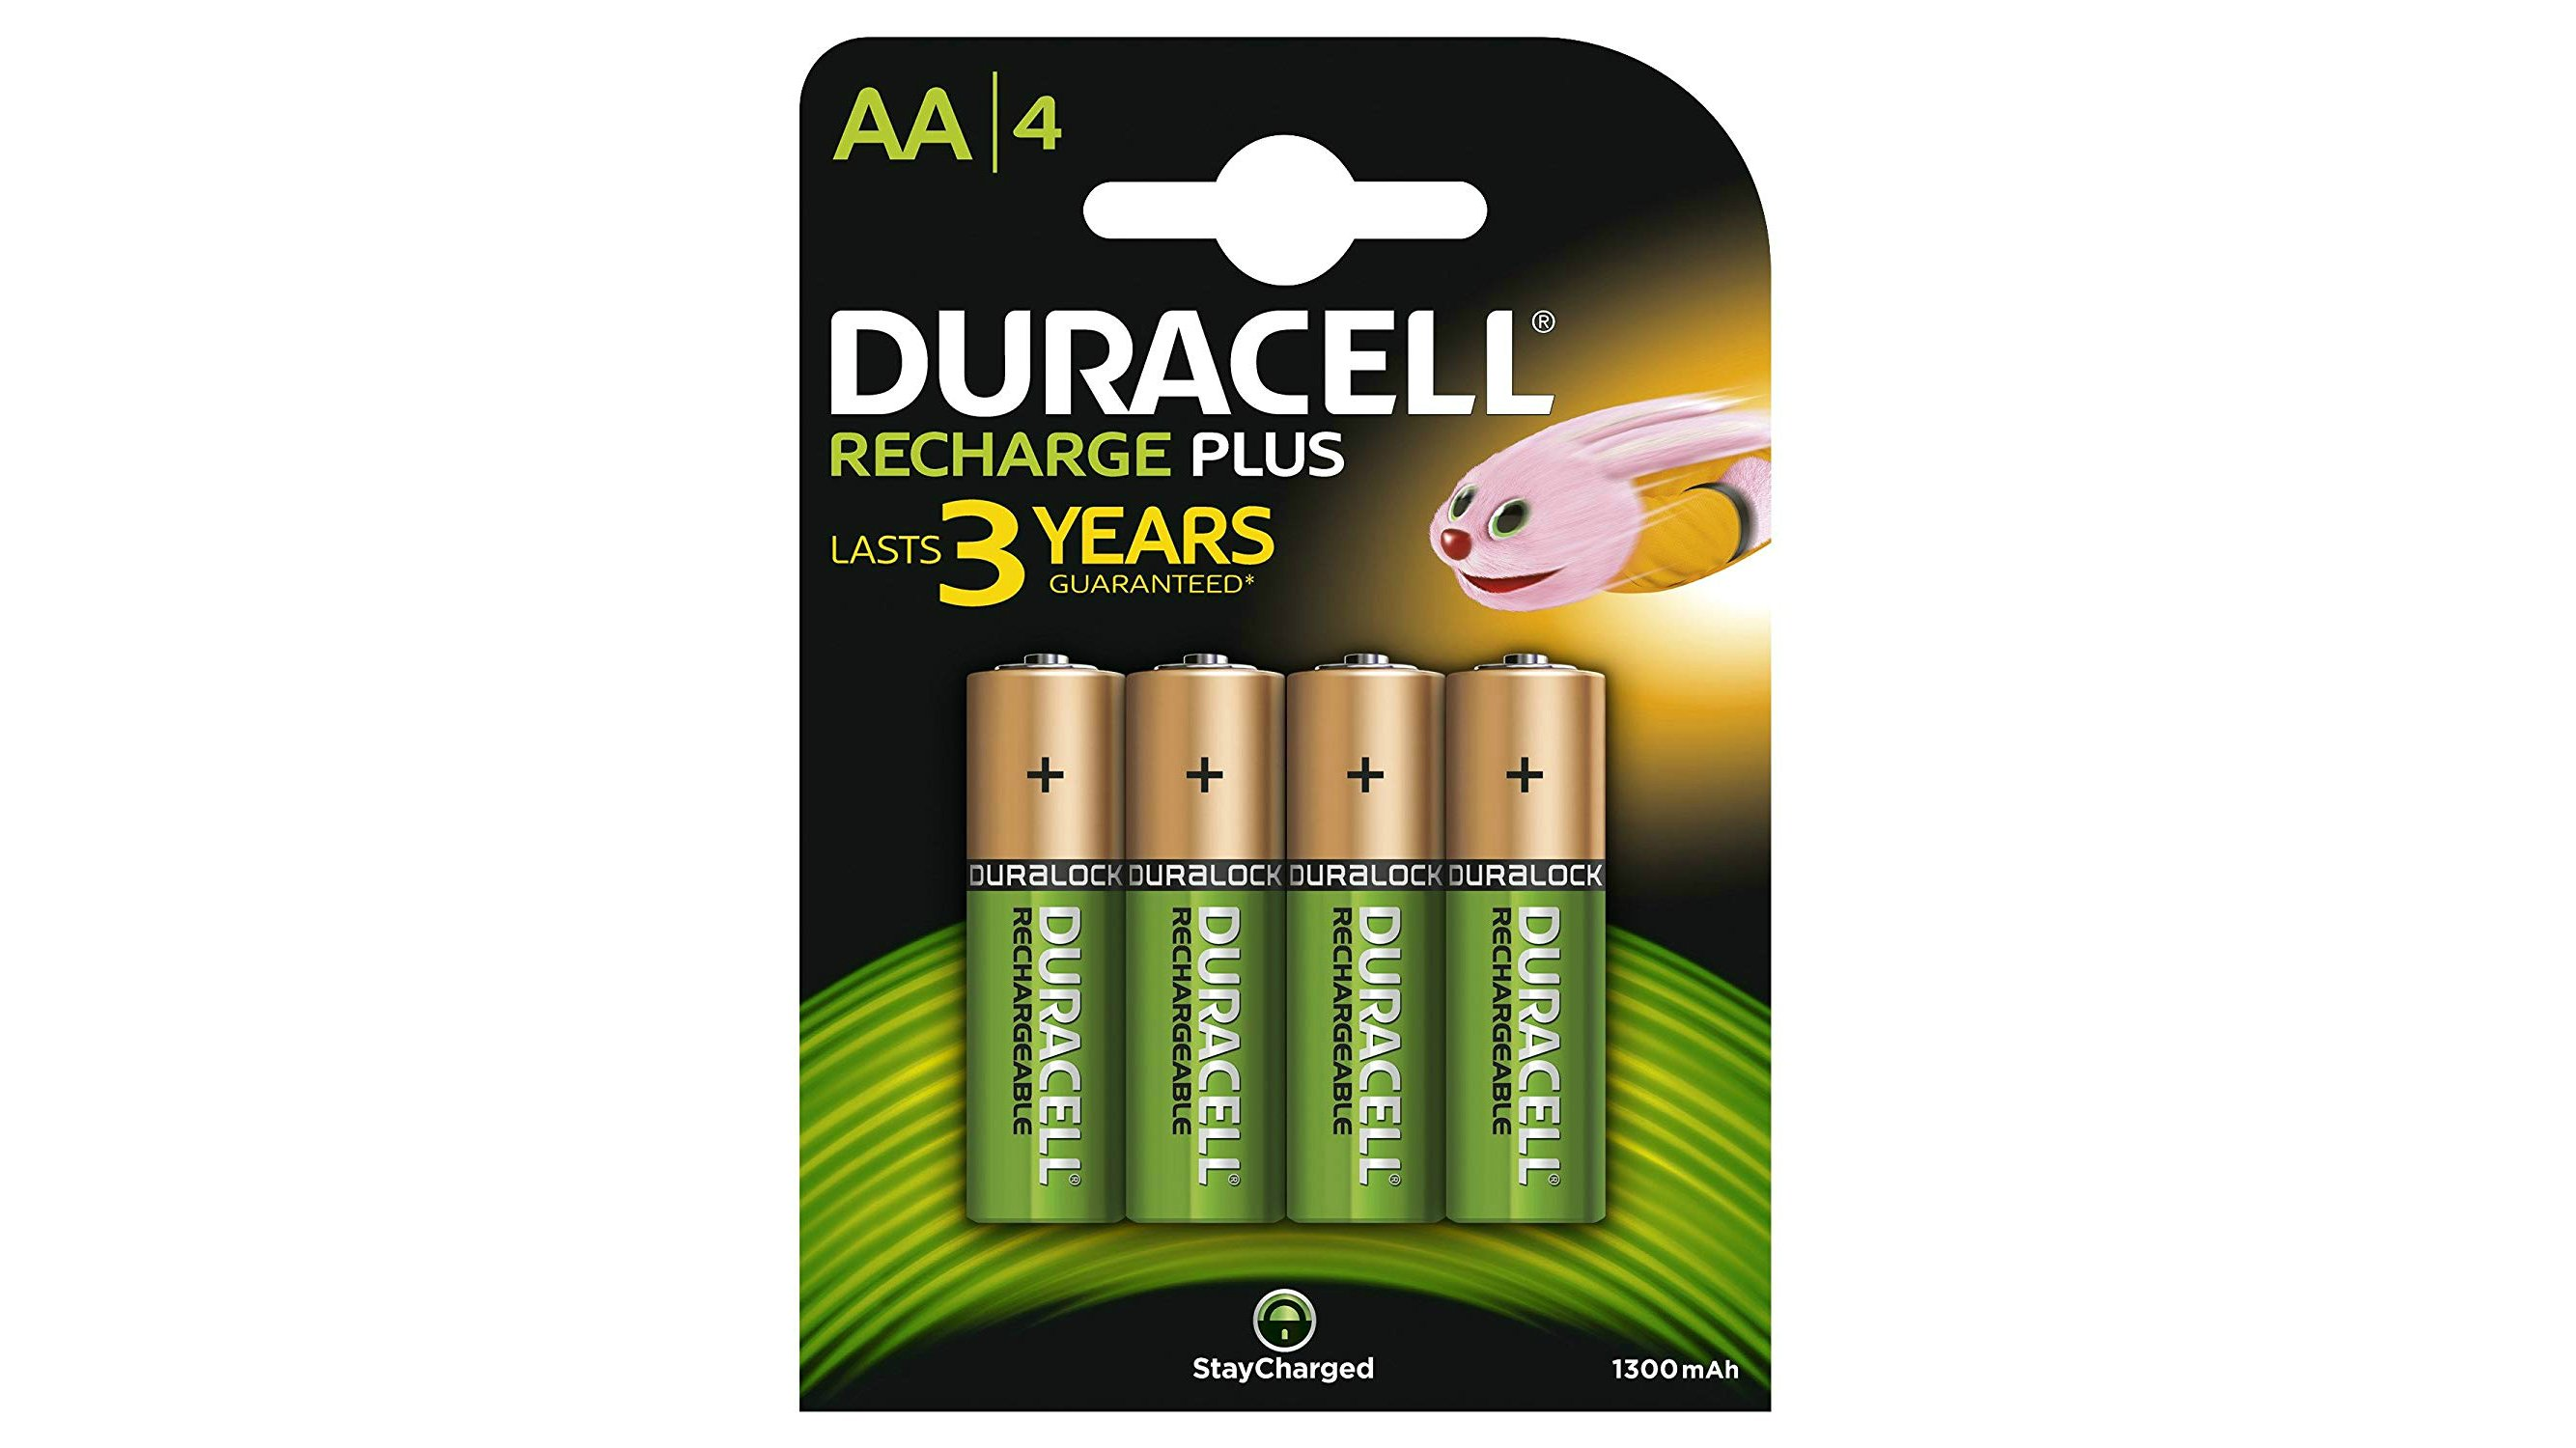 e01f2132281 Duracell is arguably the most popular of the alkaline battery brands and is  certainly no slouch in the rechargeable battery arena. Its cheaper Plus  range of ...